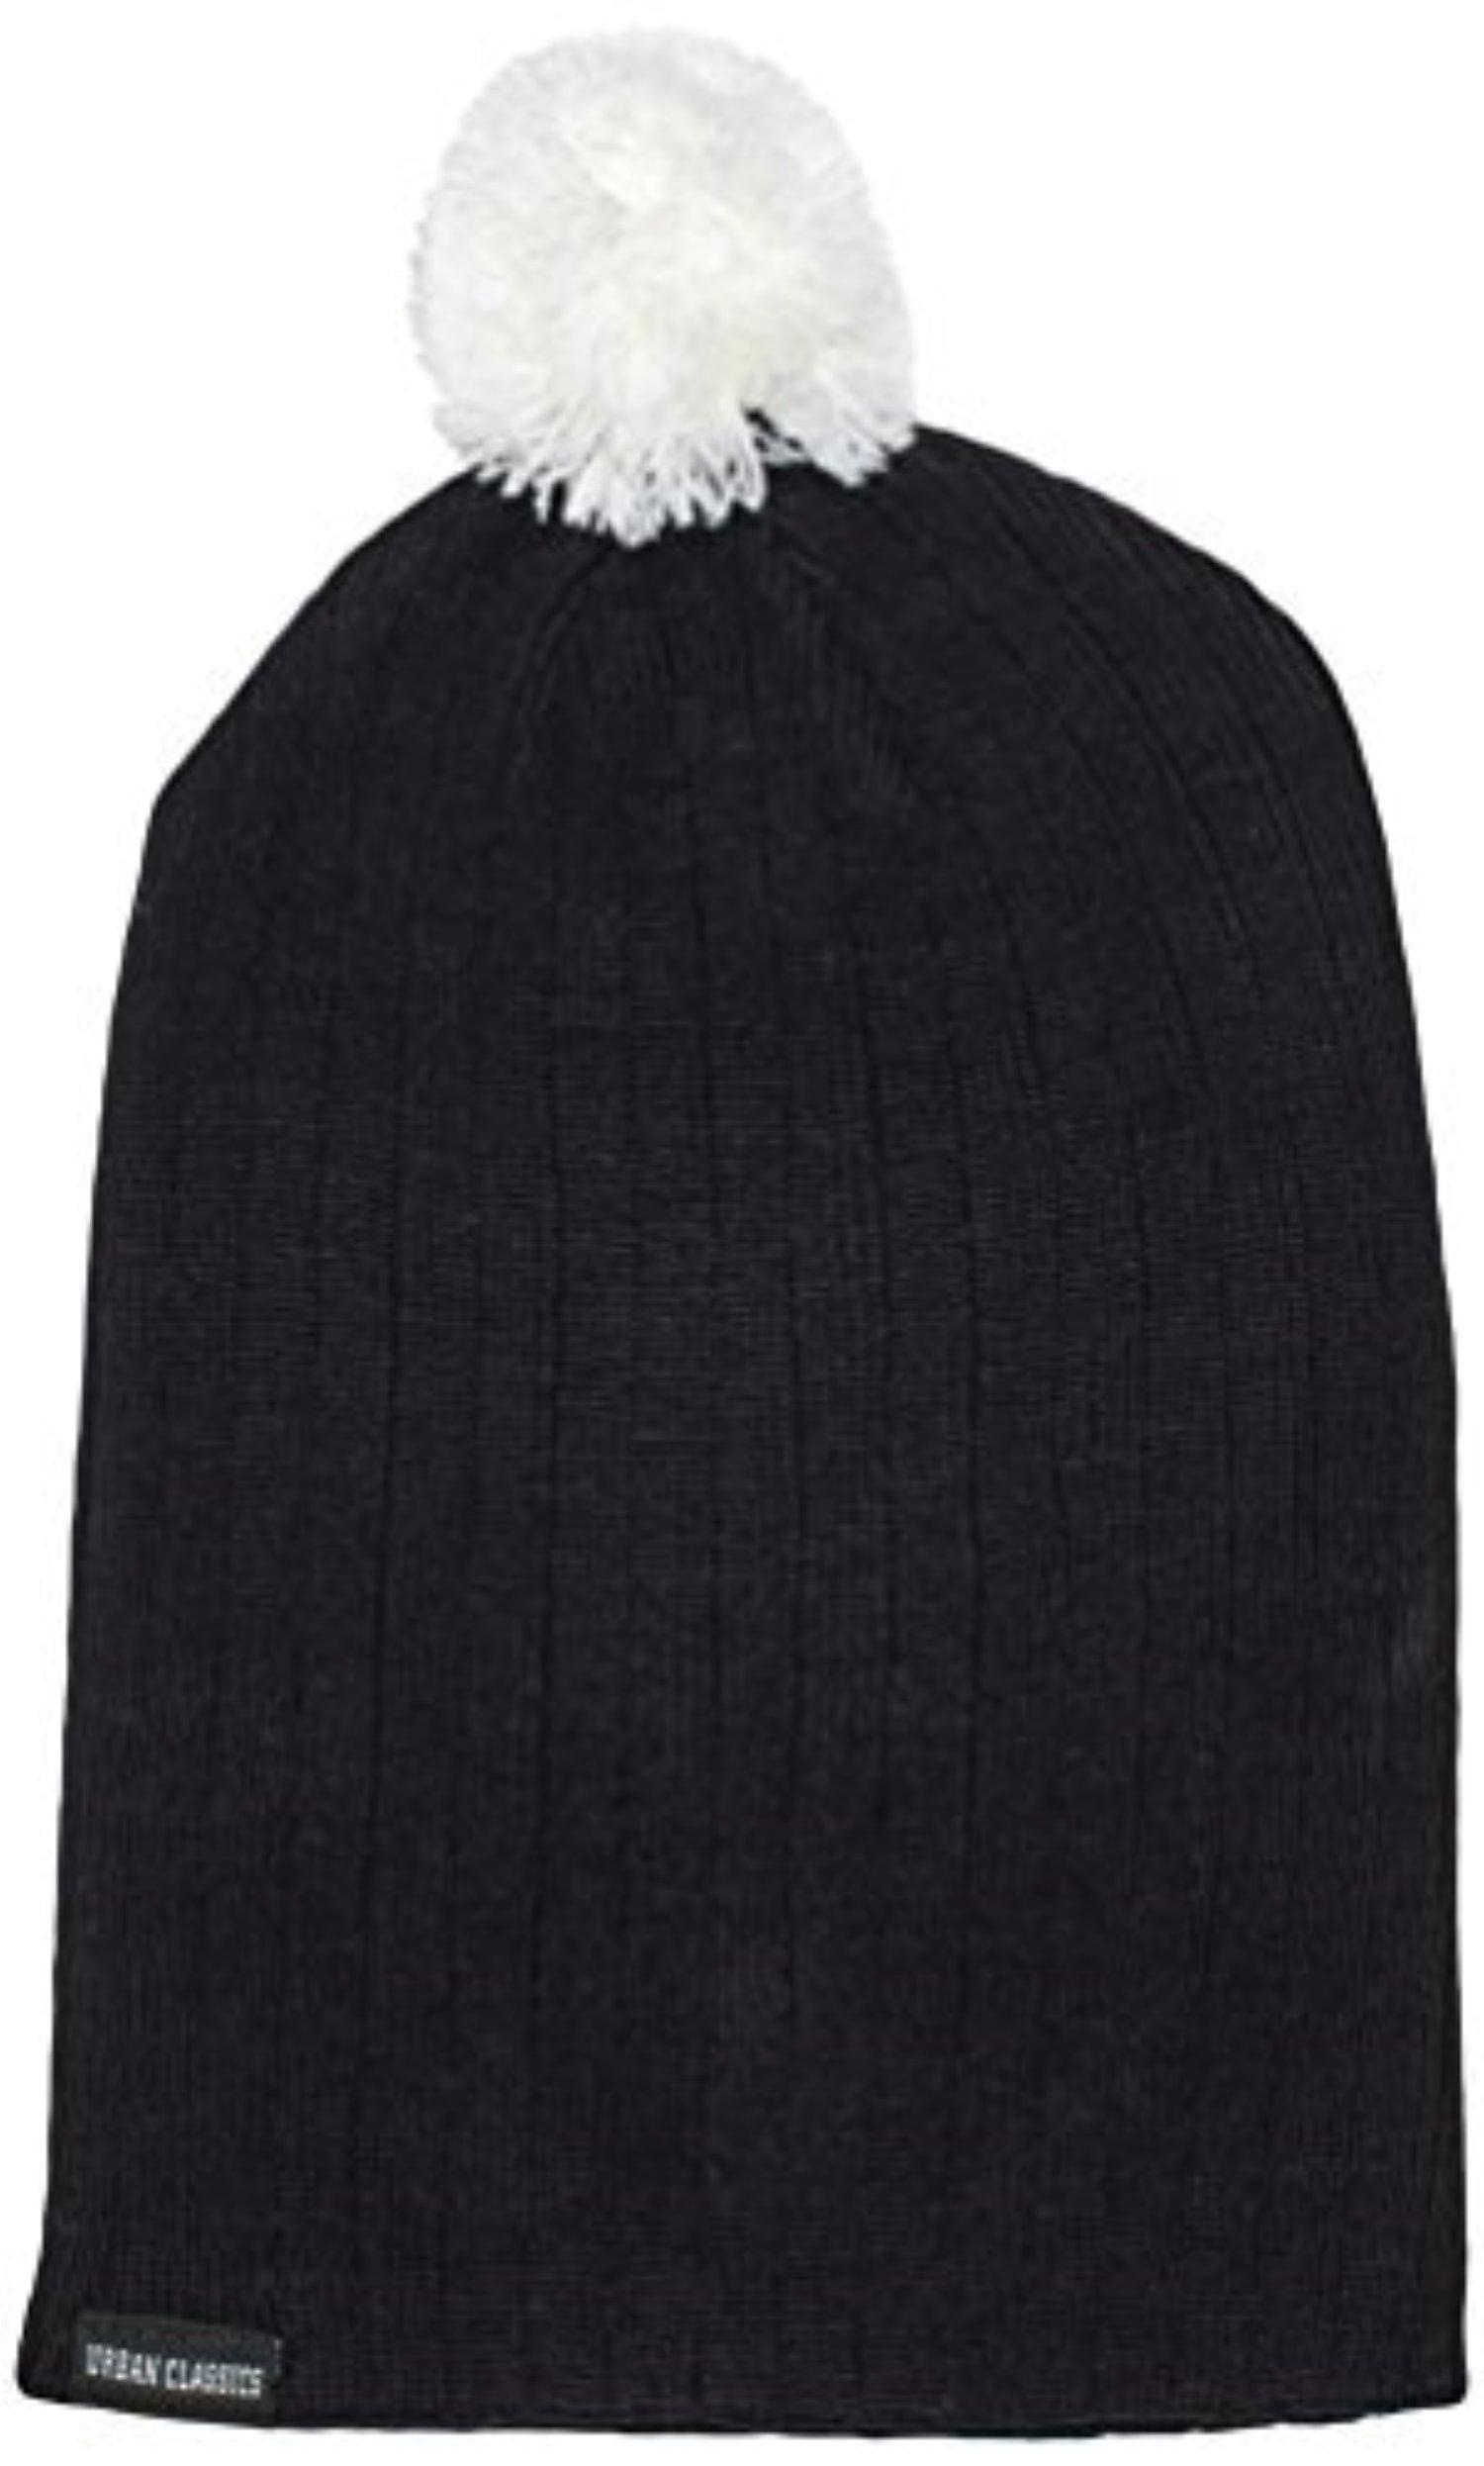 Urban Classic Men's Wintermtze Contrast Bobble Beanie - Hat - White (wei), (Manufacturer size: one size) by Urban Classic